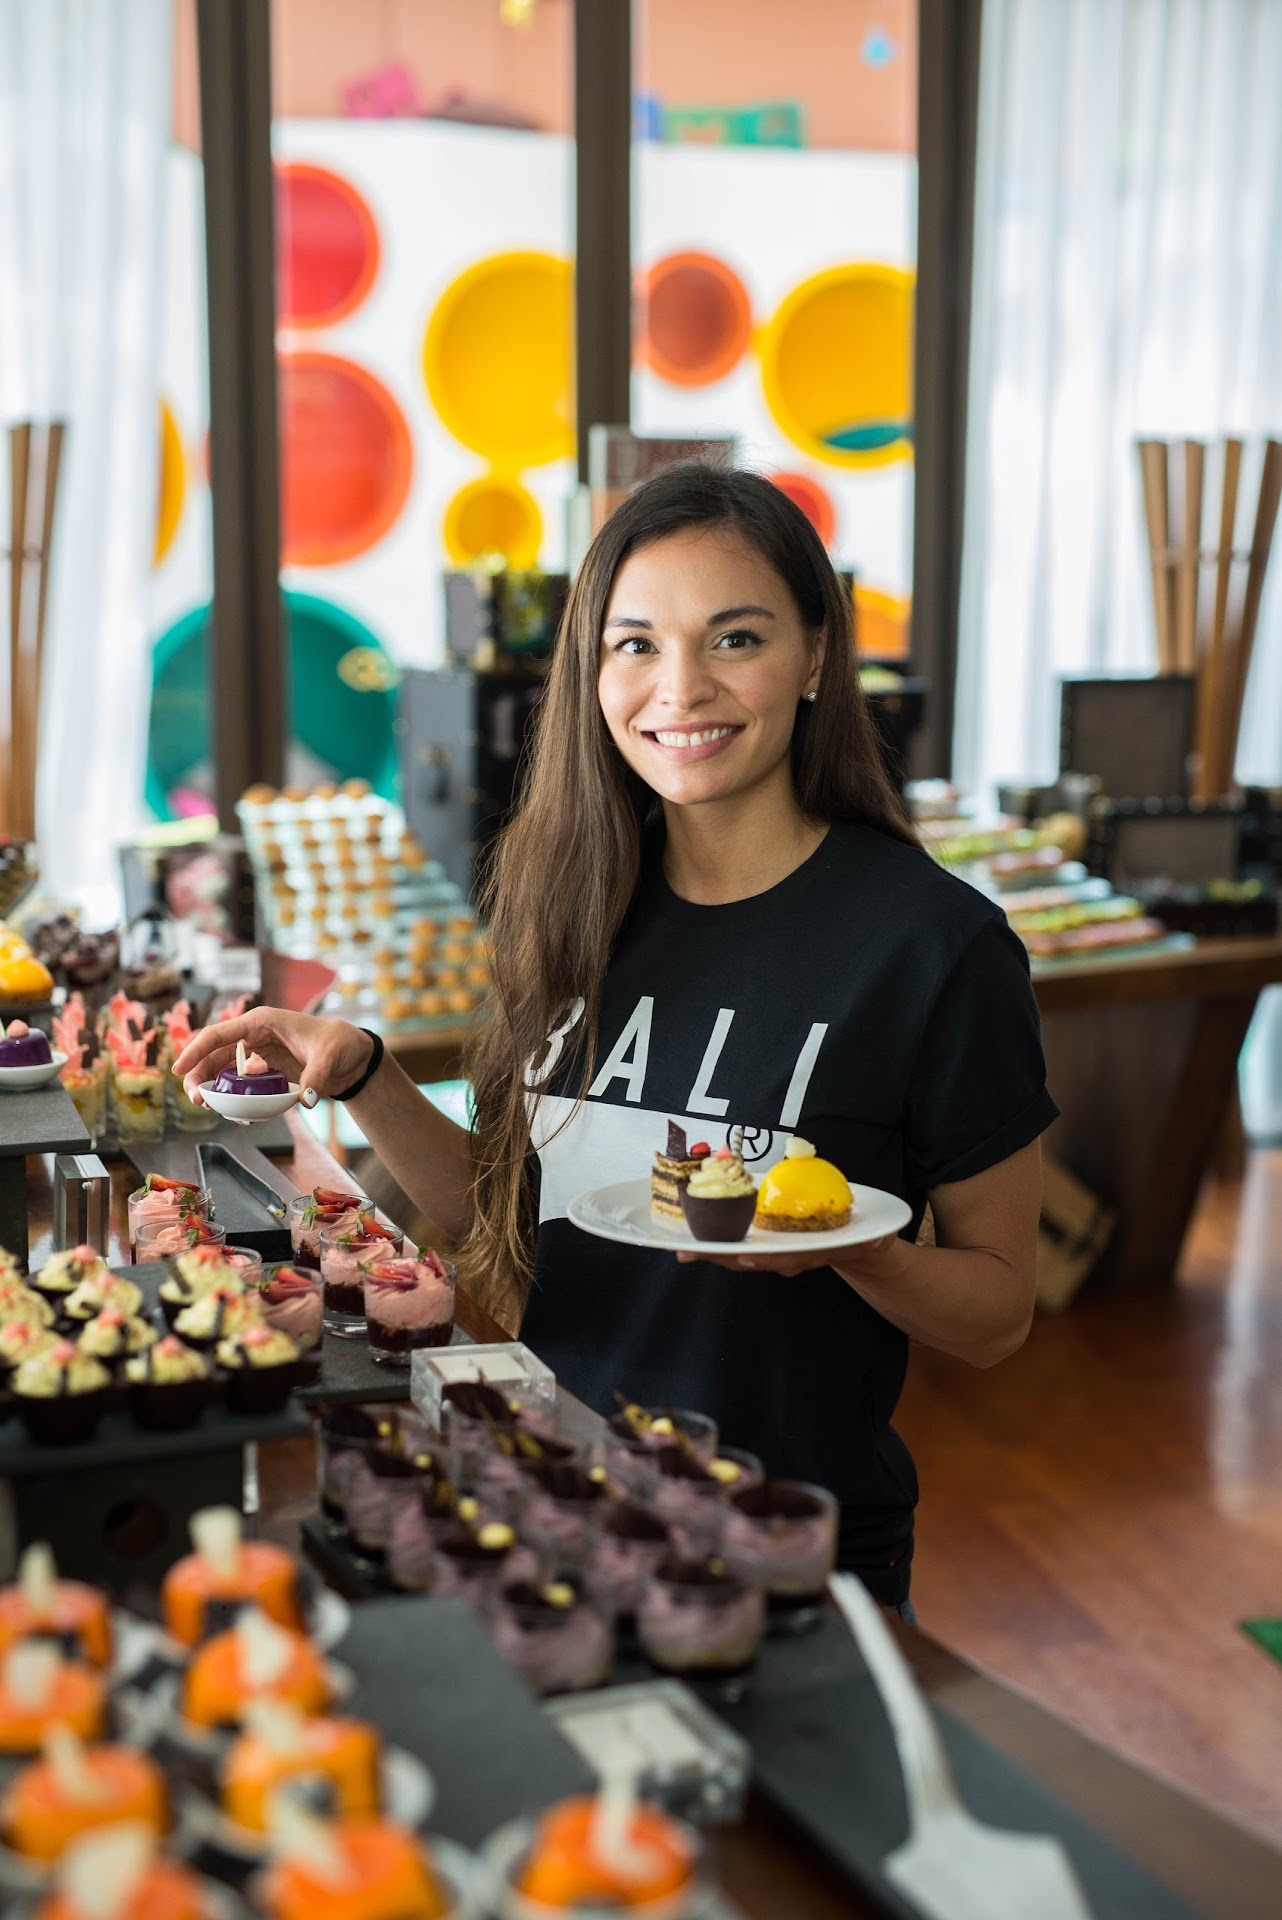 best brunch in the world, best food in bali, best hotel, nusa dua, sofitel weekend brunch review, travel blogger, indonesia, things to do in bali, what to eat in bali, best buffet in the world, dessert buffet, french pastries, san francisco bay are travel blogger, california, mormon lds